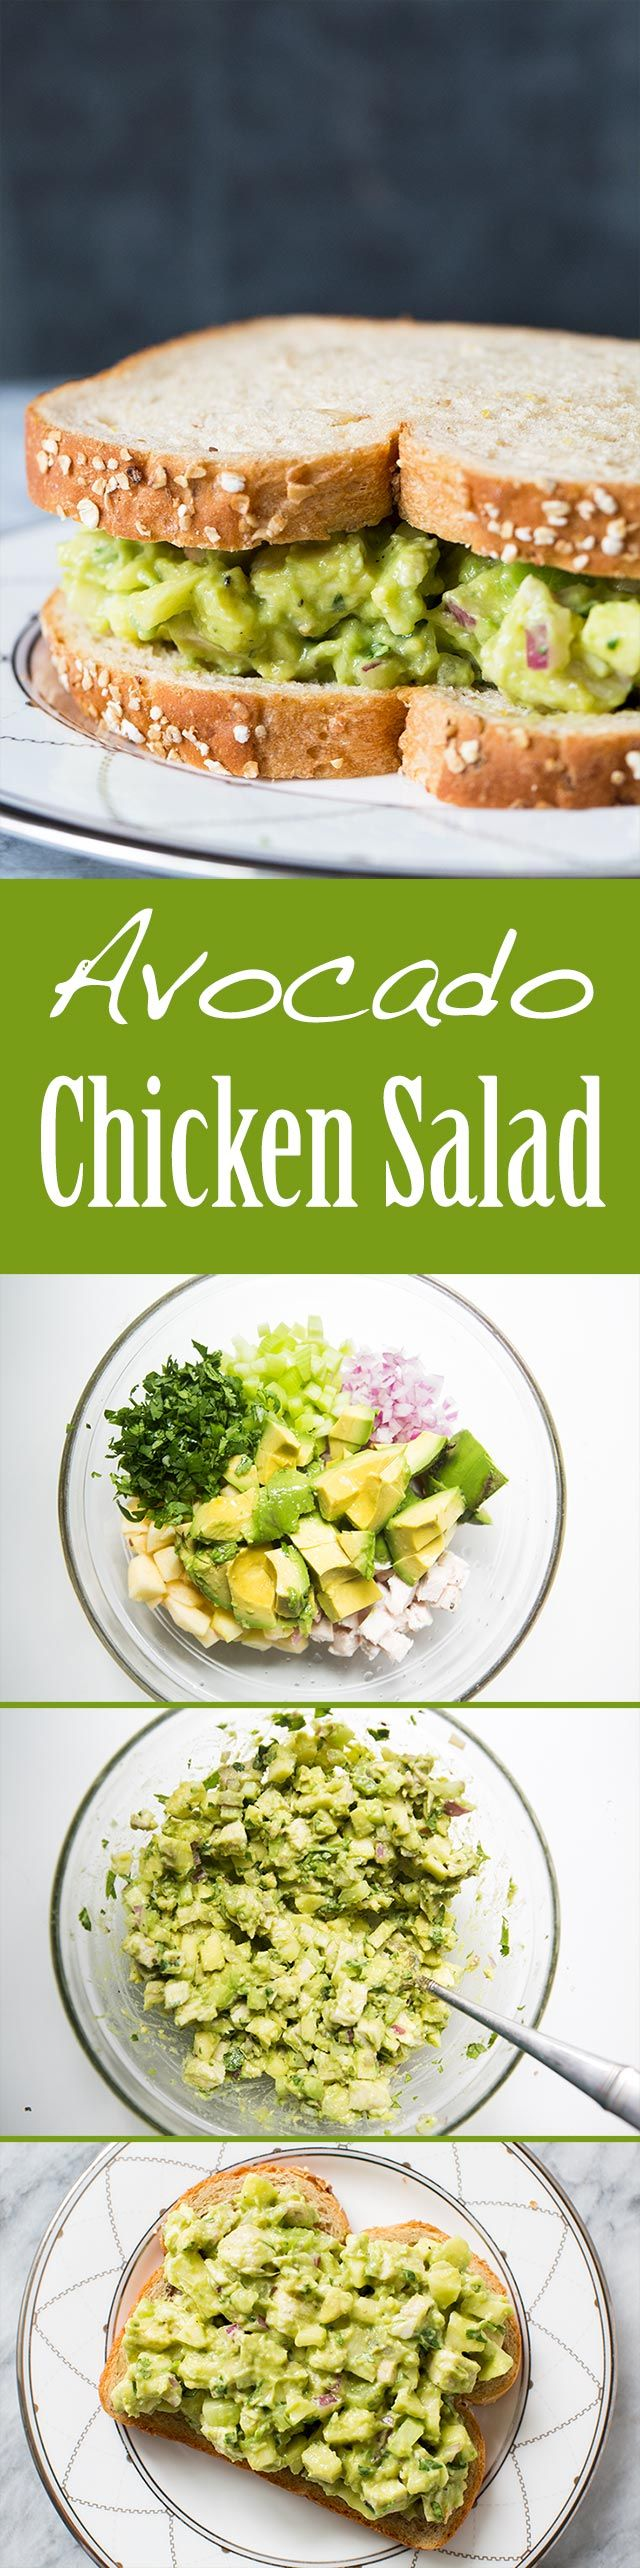 Easy chicken salad recipes with mayo